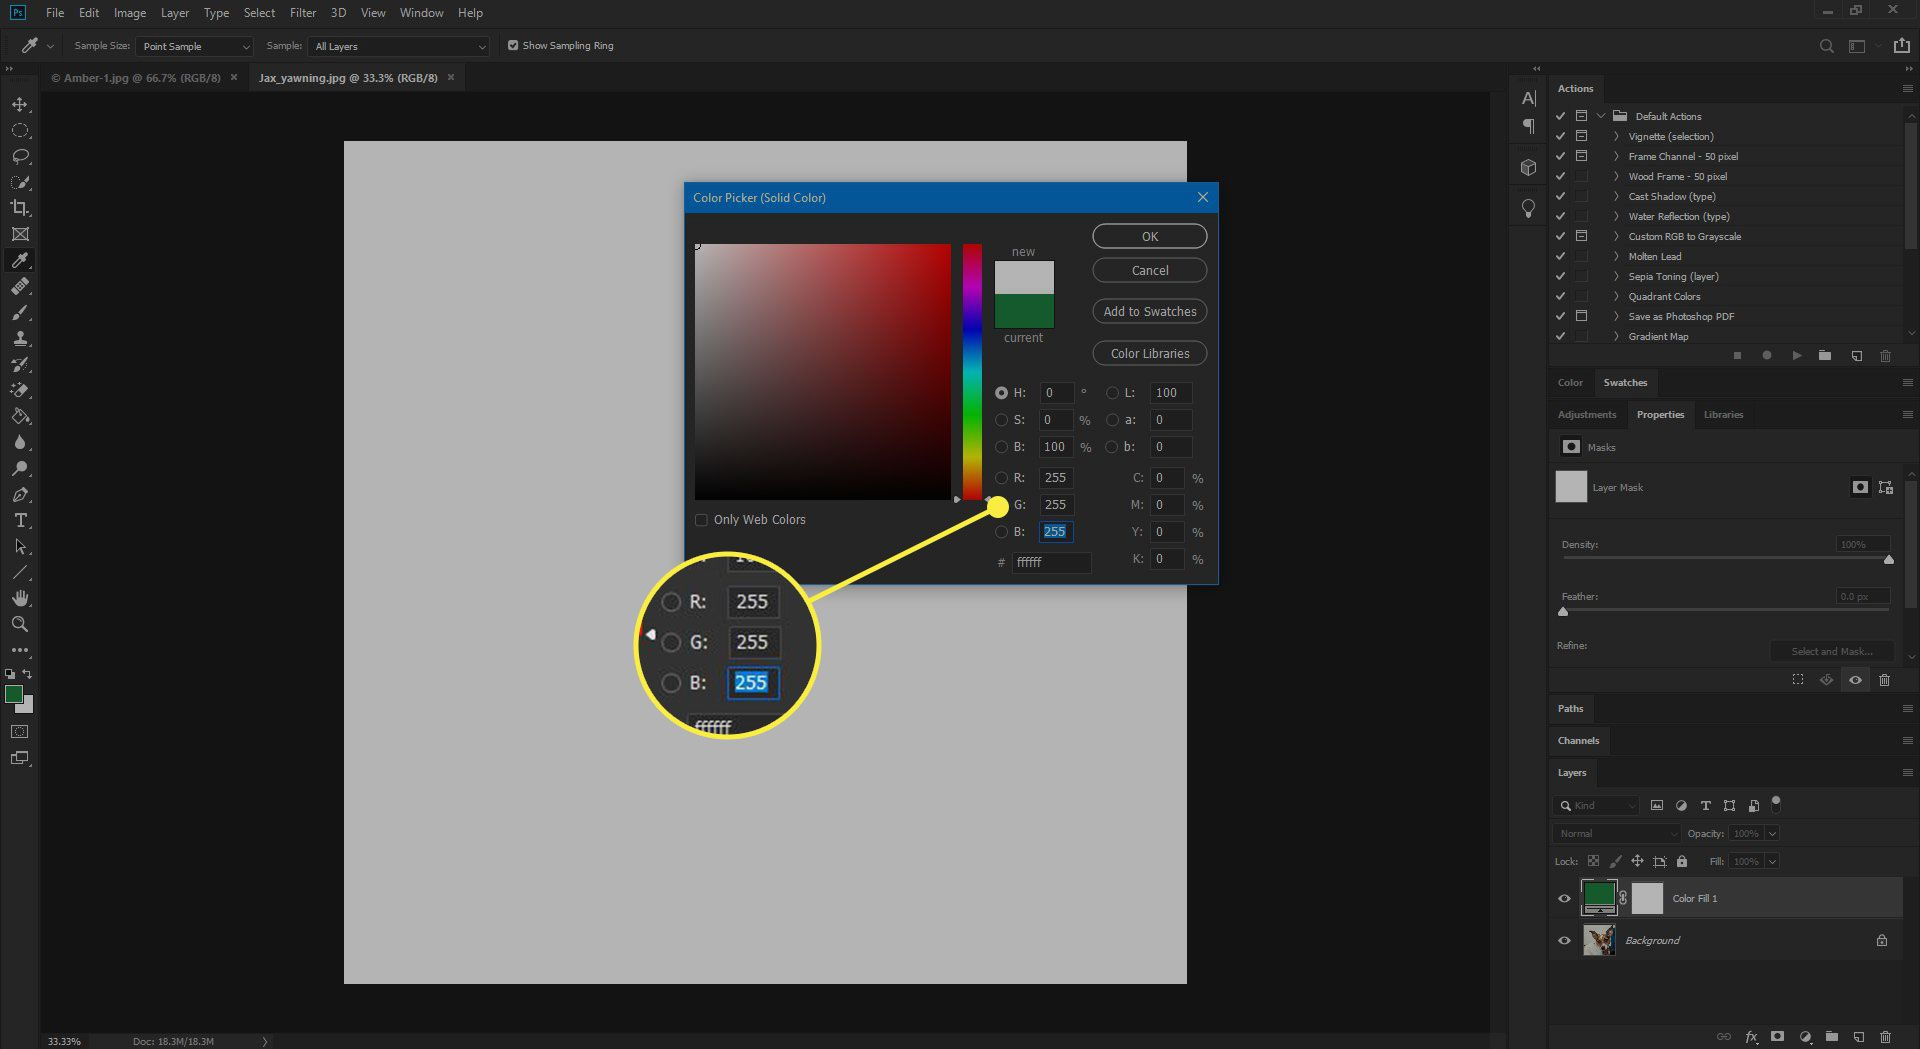 The RGB options in the Color Picker